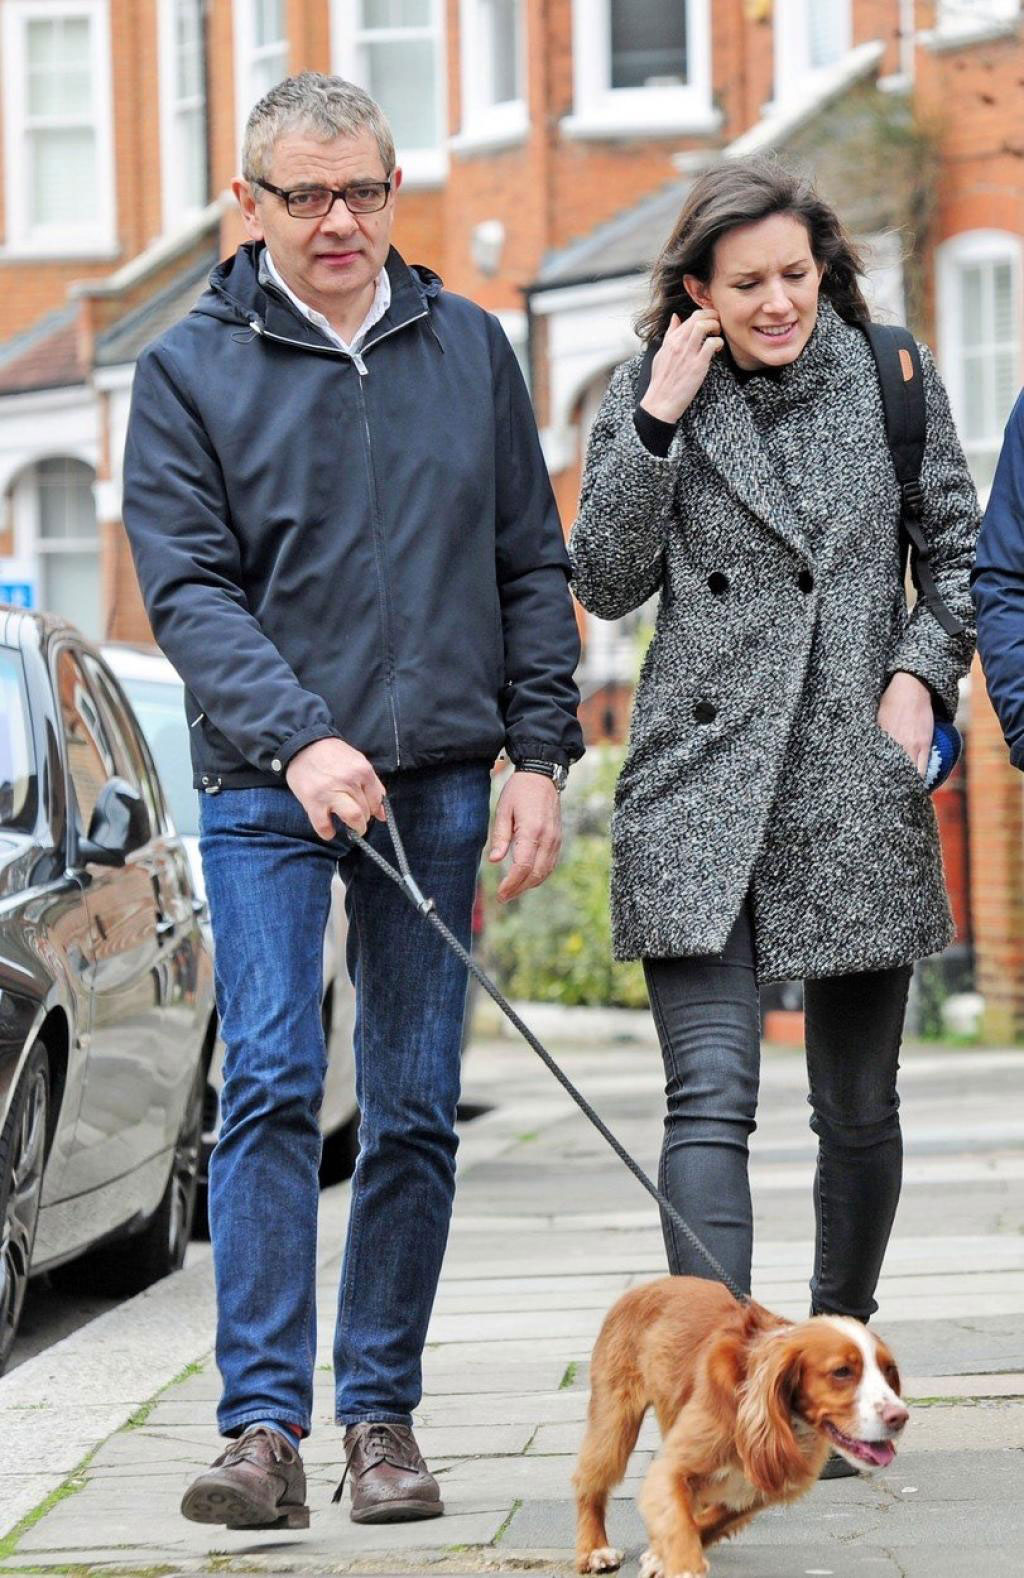 41c79359-1b68-471b-89c2-8e6282f1df2b-exc-rowan-atkinson-out-and-alive-with-his-girlfriend-louise-ford.jpg